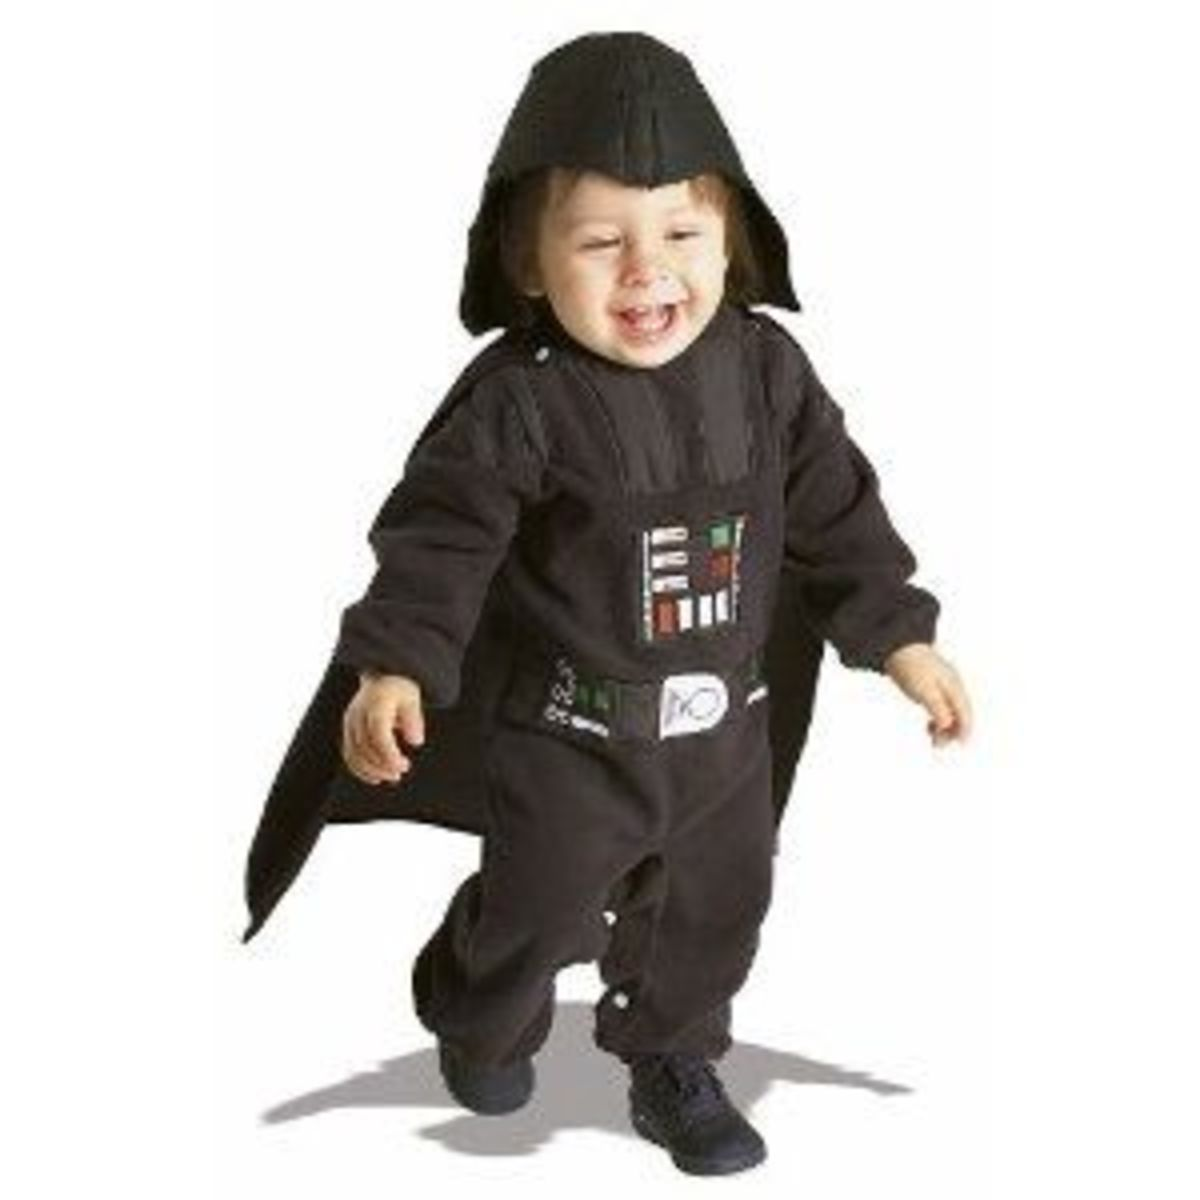 Baby Darth VaderTM Costume